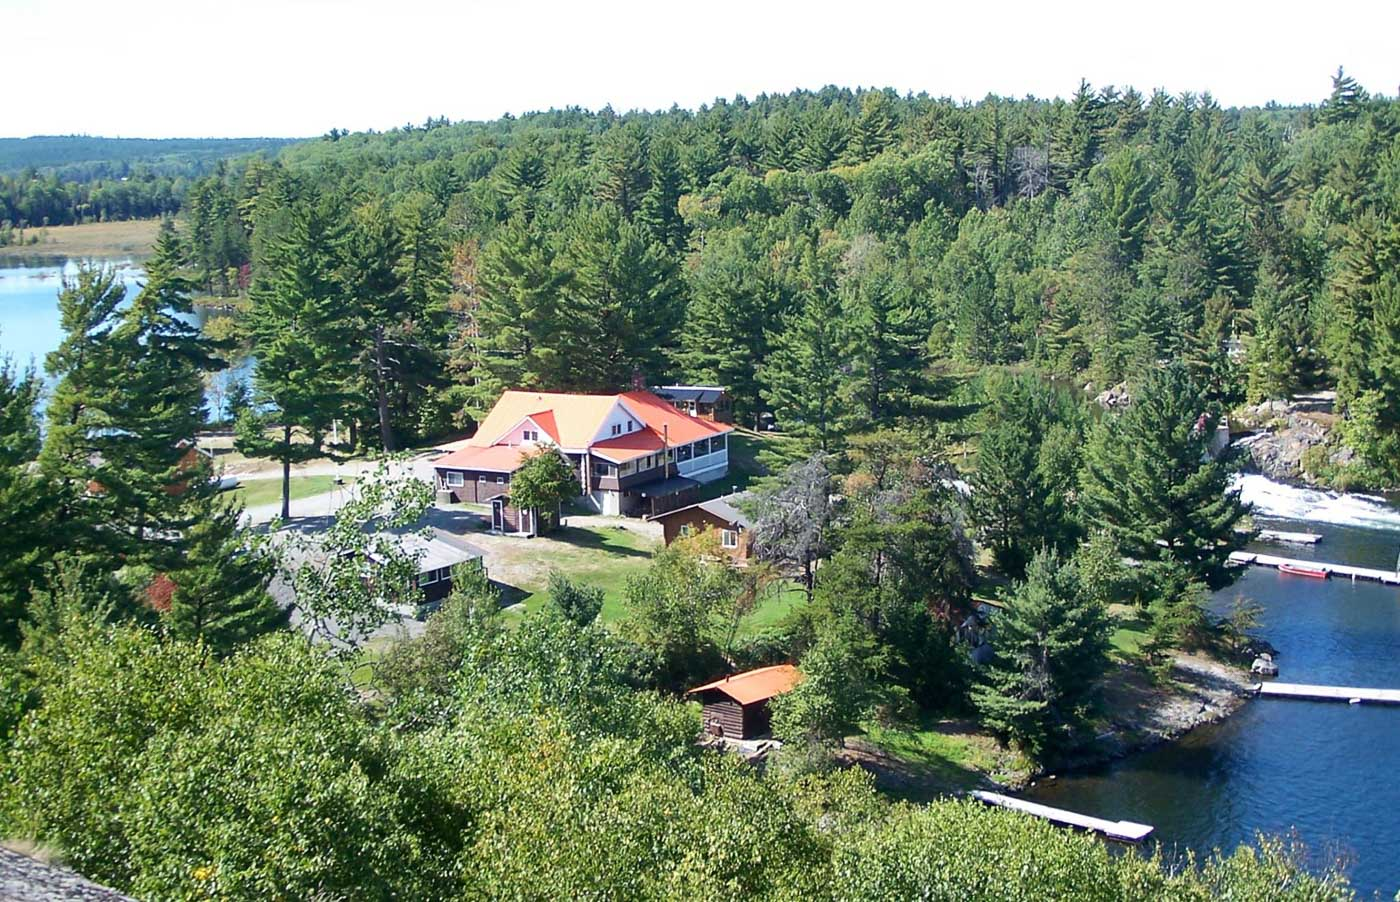 View of Pine Falls Lodge from nearby cliff